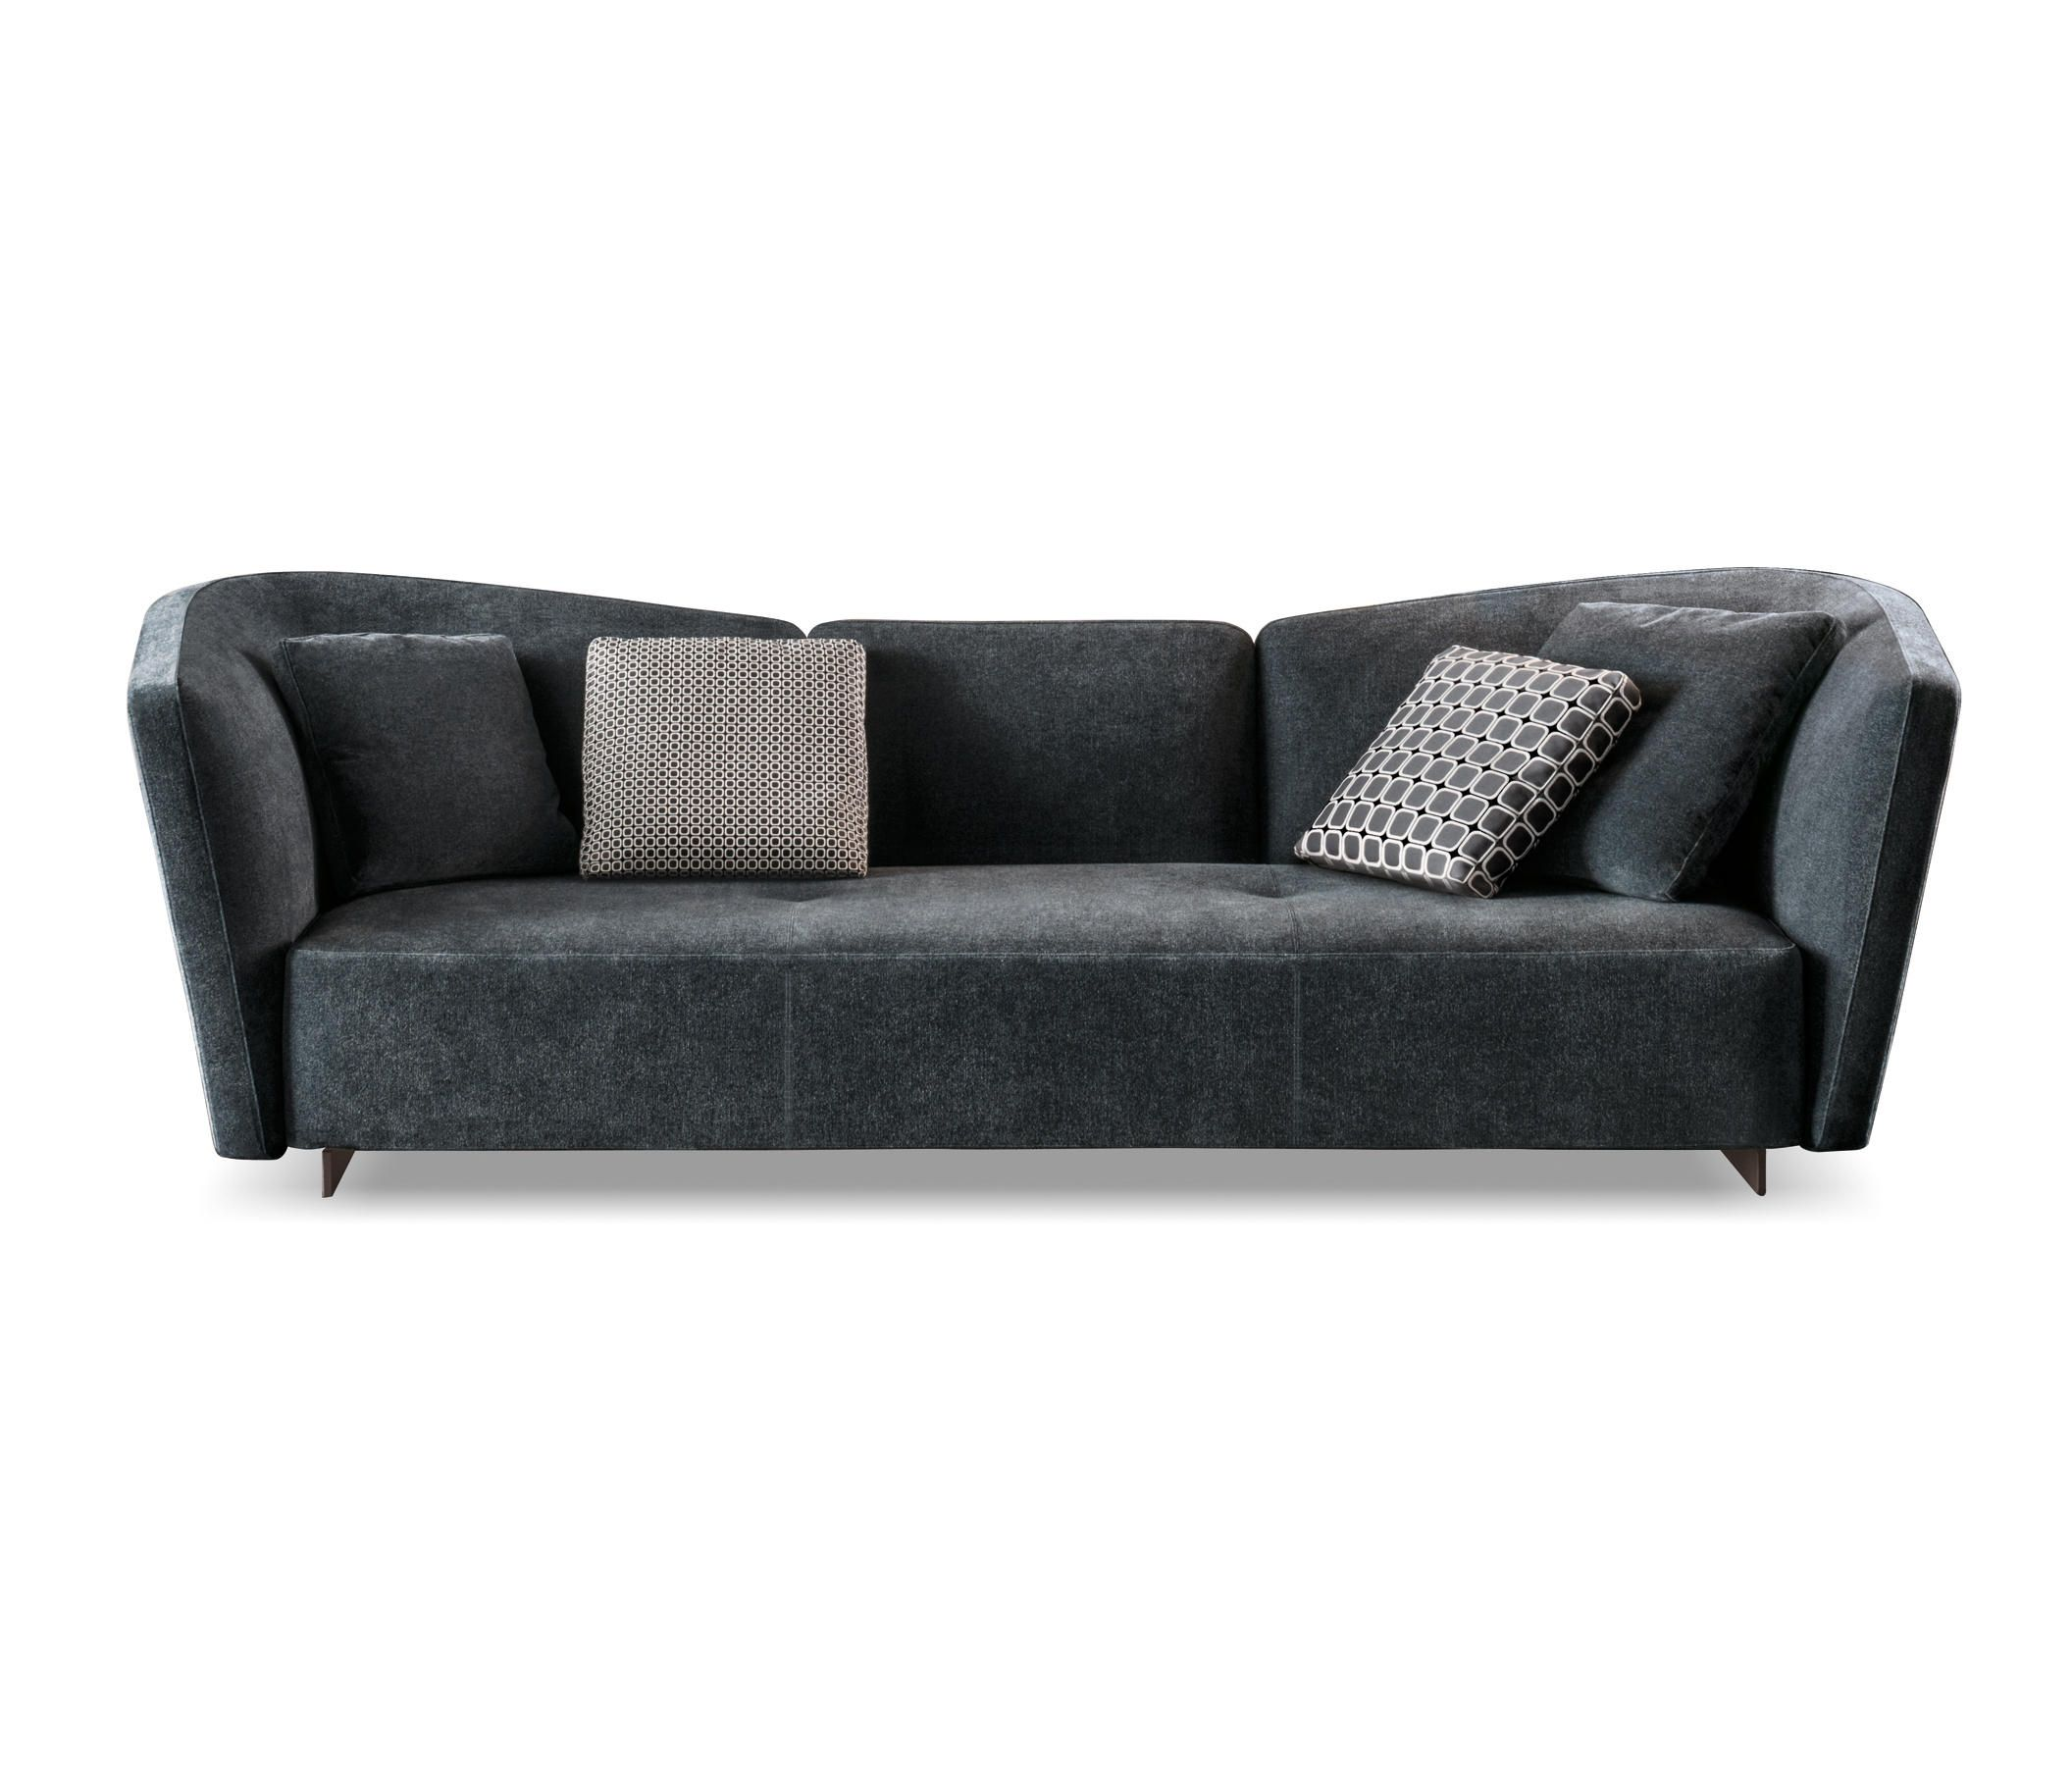 Lounge Seymour By Minotti - Lounge Sofas